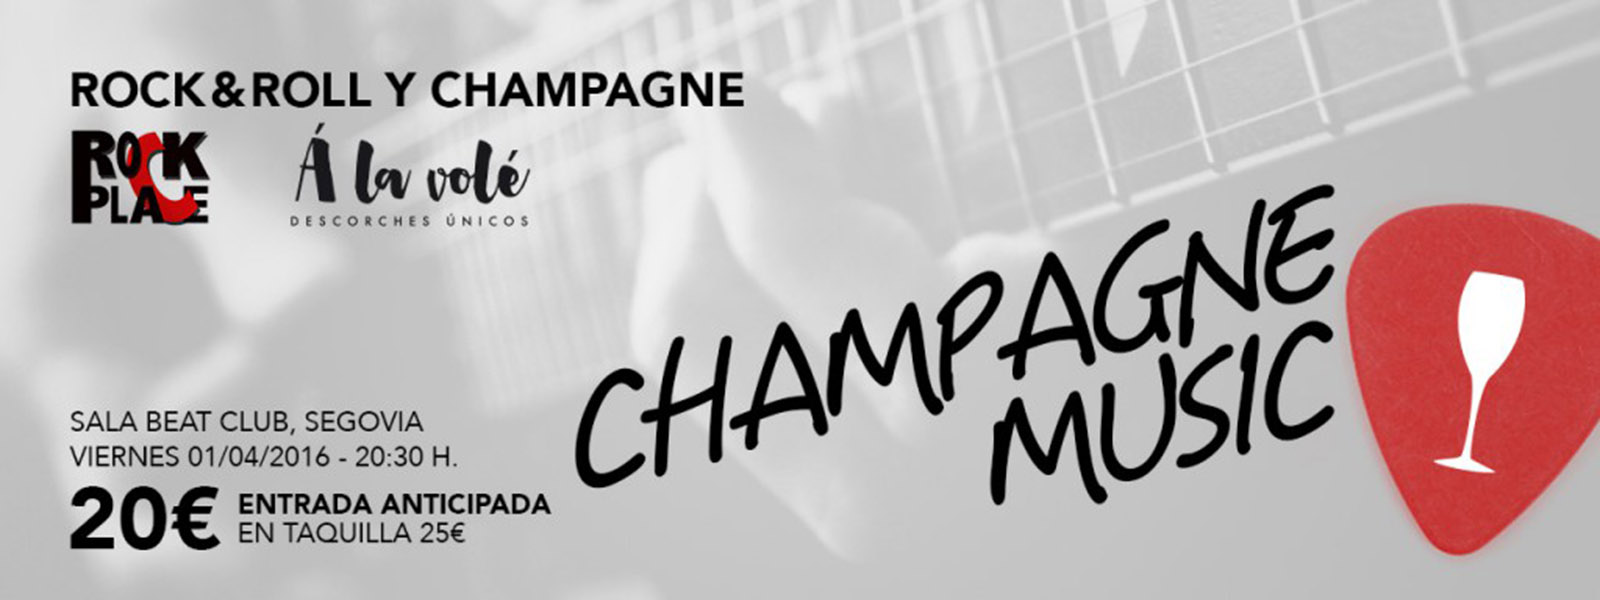 champagne-music-2016 (1)